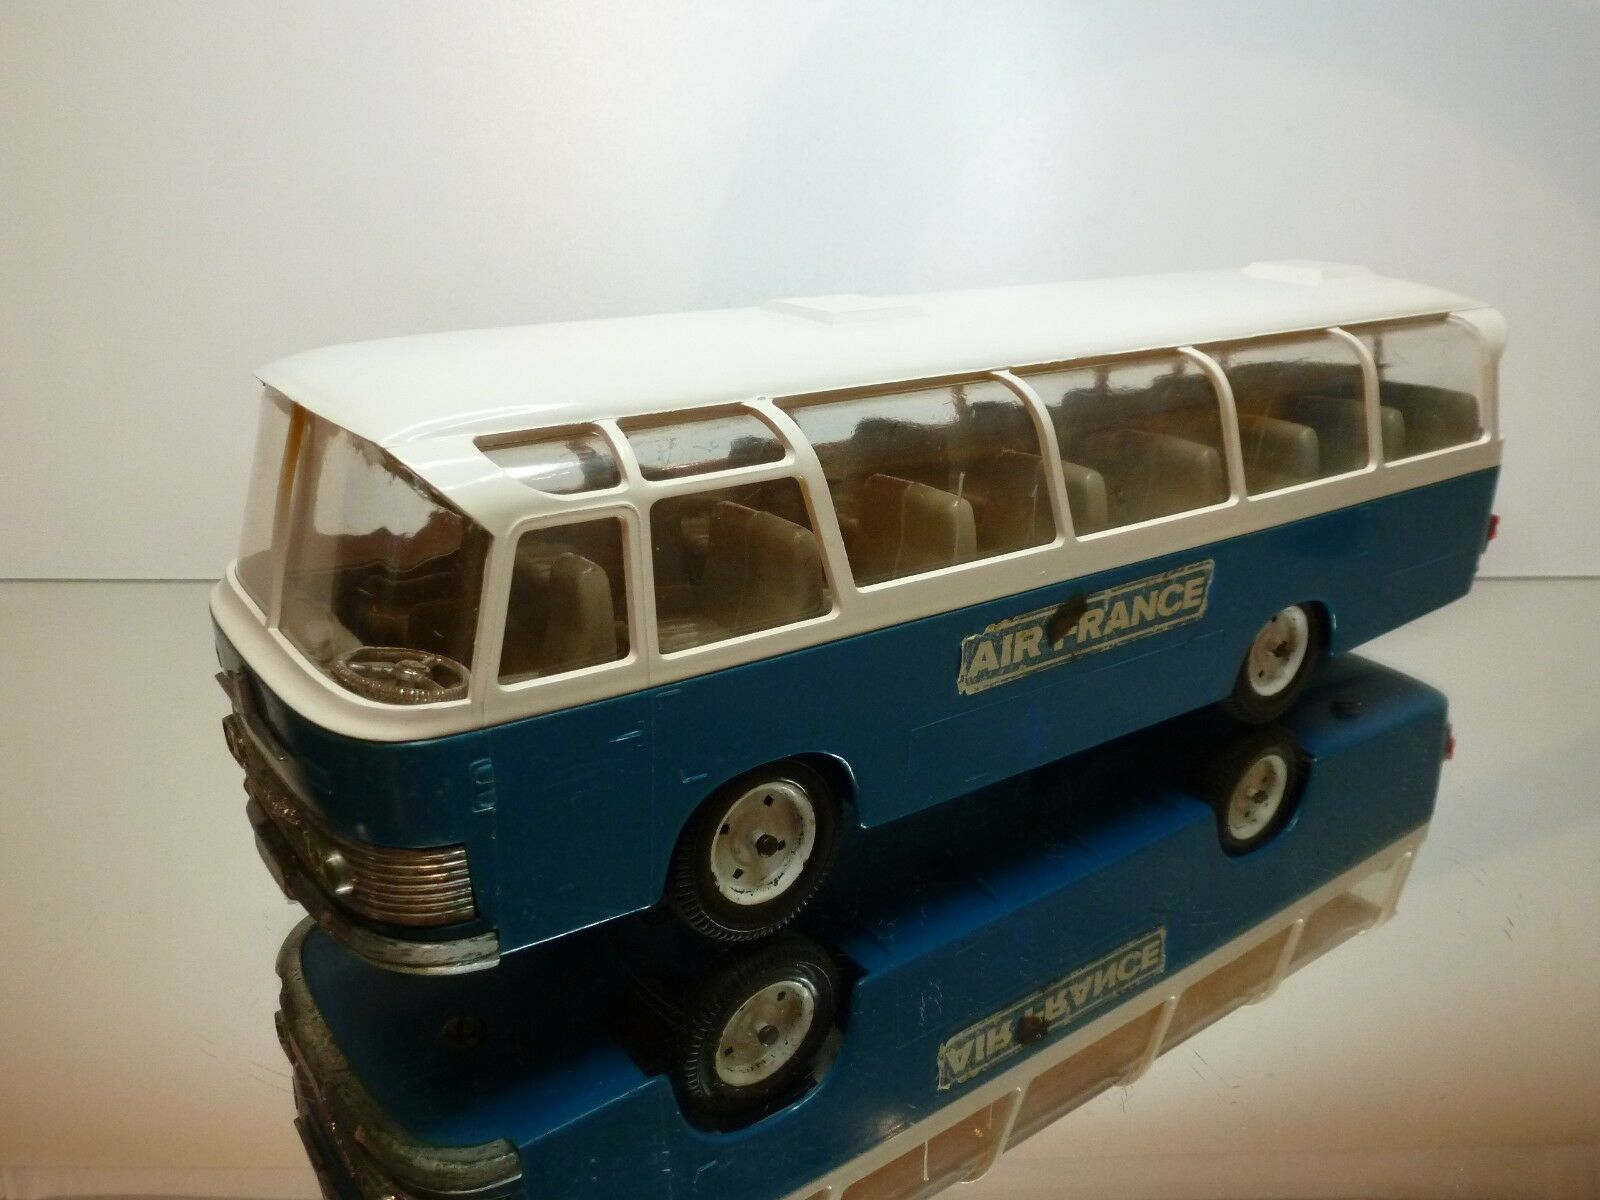 REX NEOPLAN AUTOBUS AIR FRANCE - bleu + blanc L37.0cm  - GOOD CONDITION